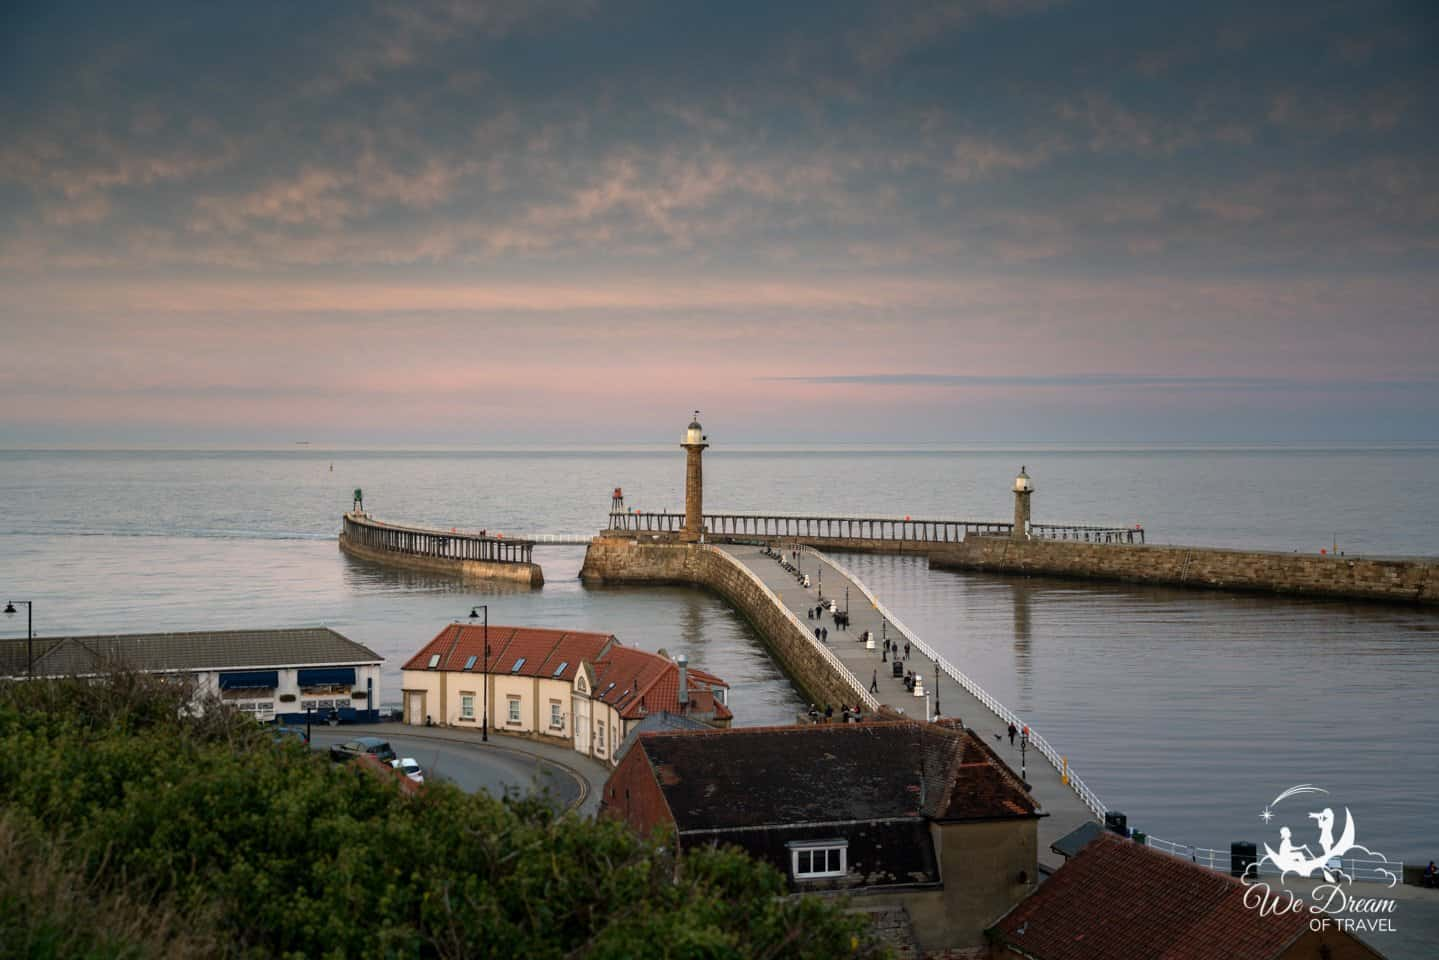 Whitby Piers (east and west pier) and lighthouses as sunset colours fade.